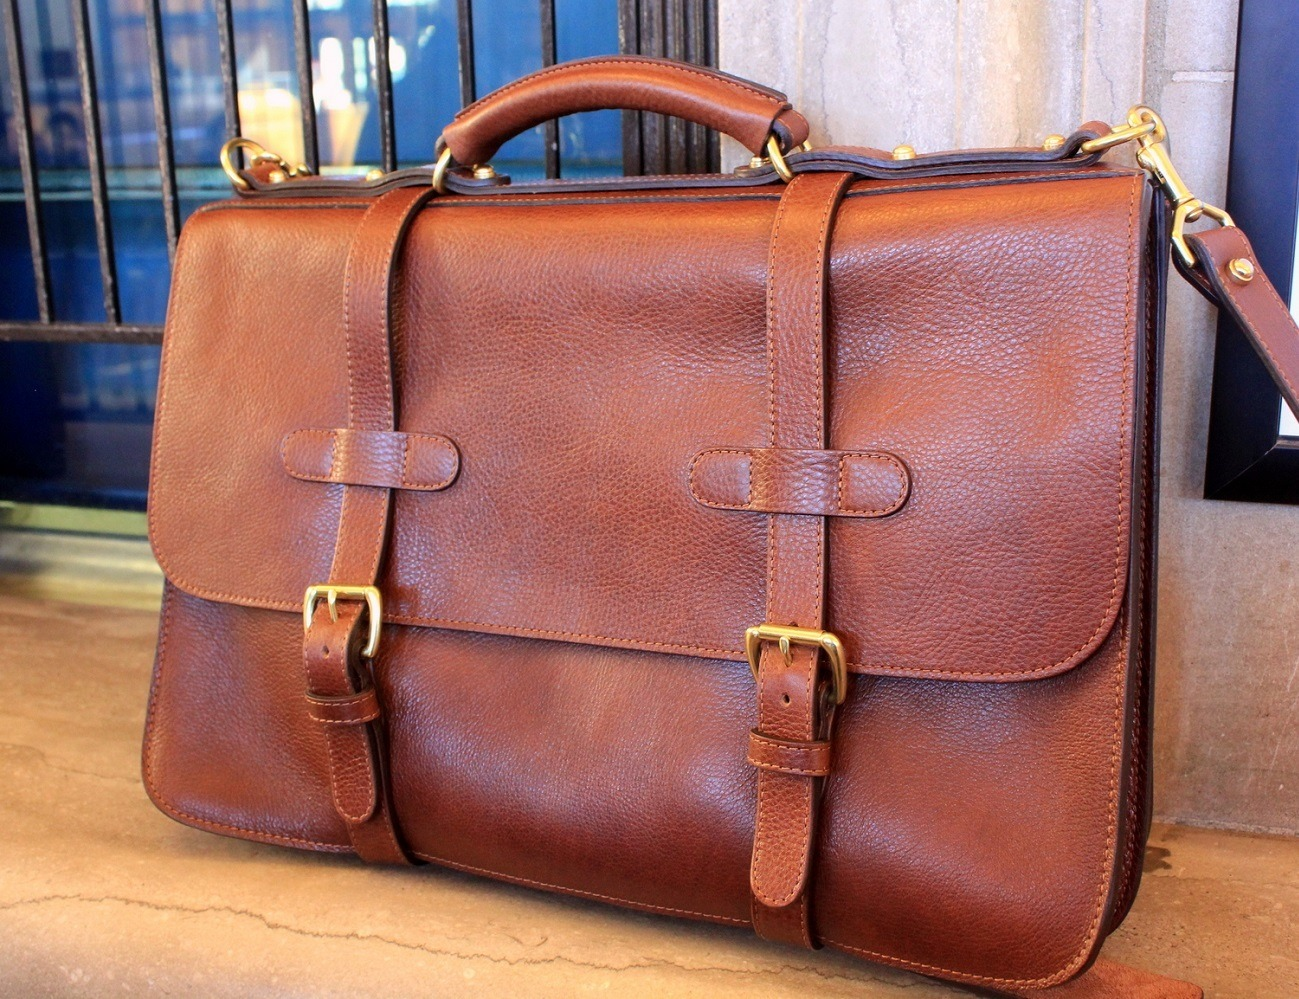 d061dfe55e English Leather Briefcase By Lotuff » Gadget Flow